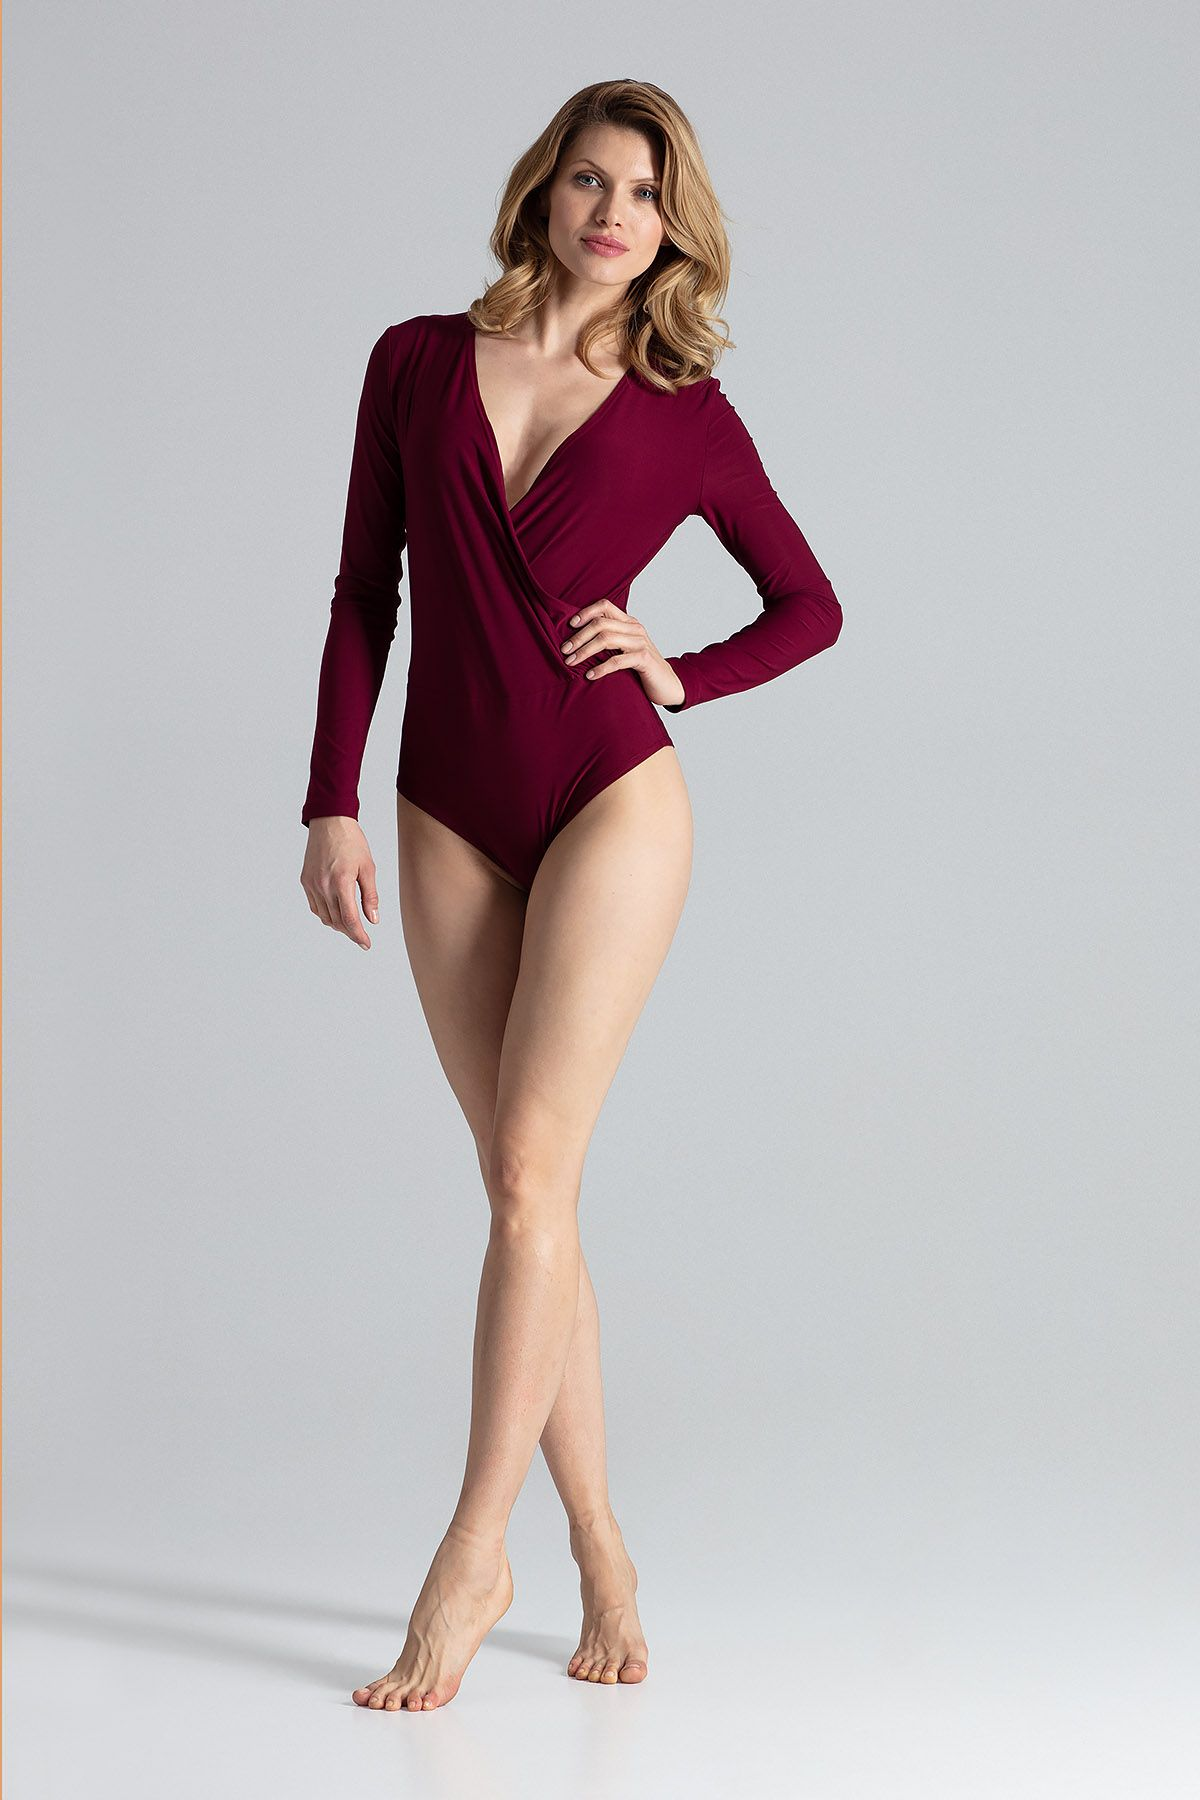 Red Body With Long Sleeves, V-Neckline